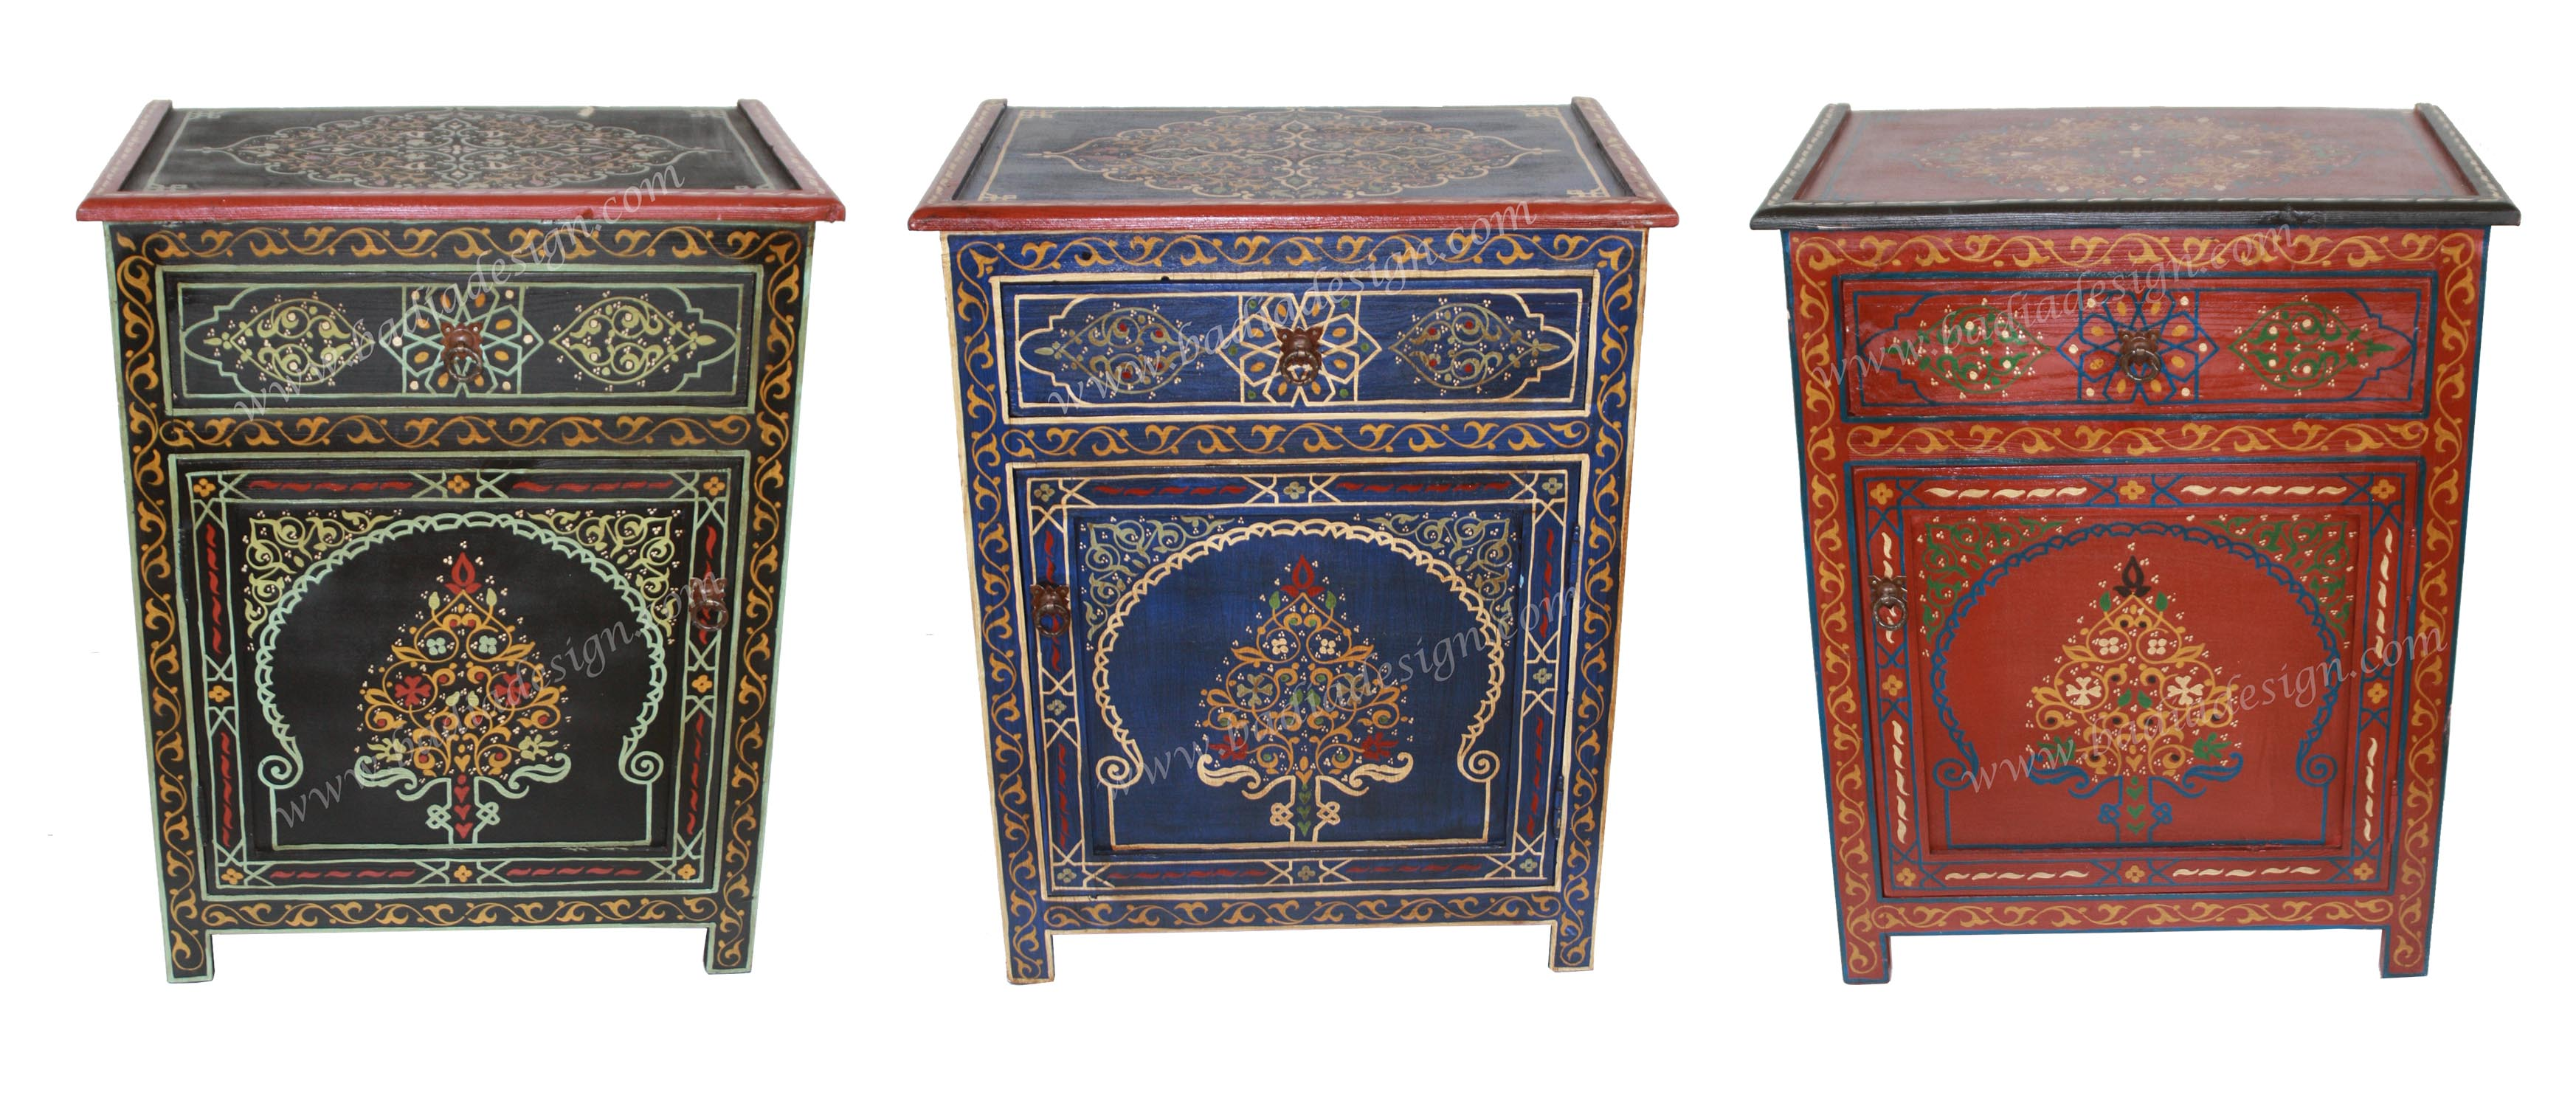 moroccan-wooden-nightstand-hp-ns010.jpg